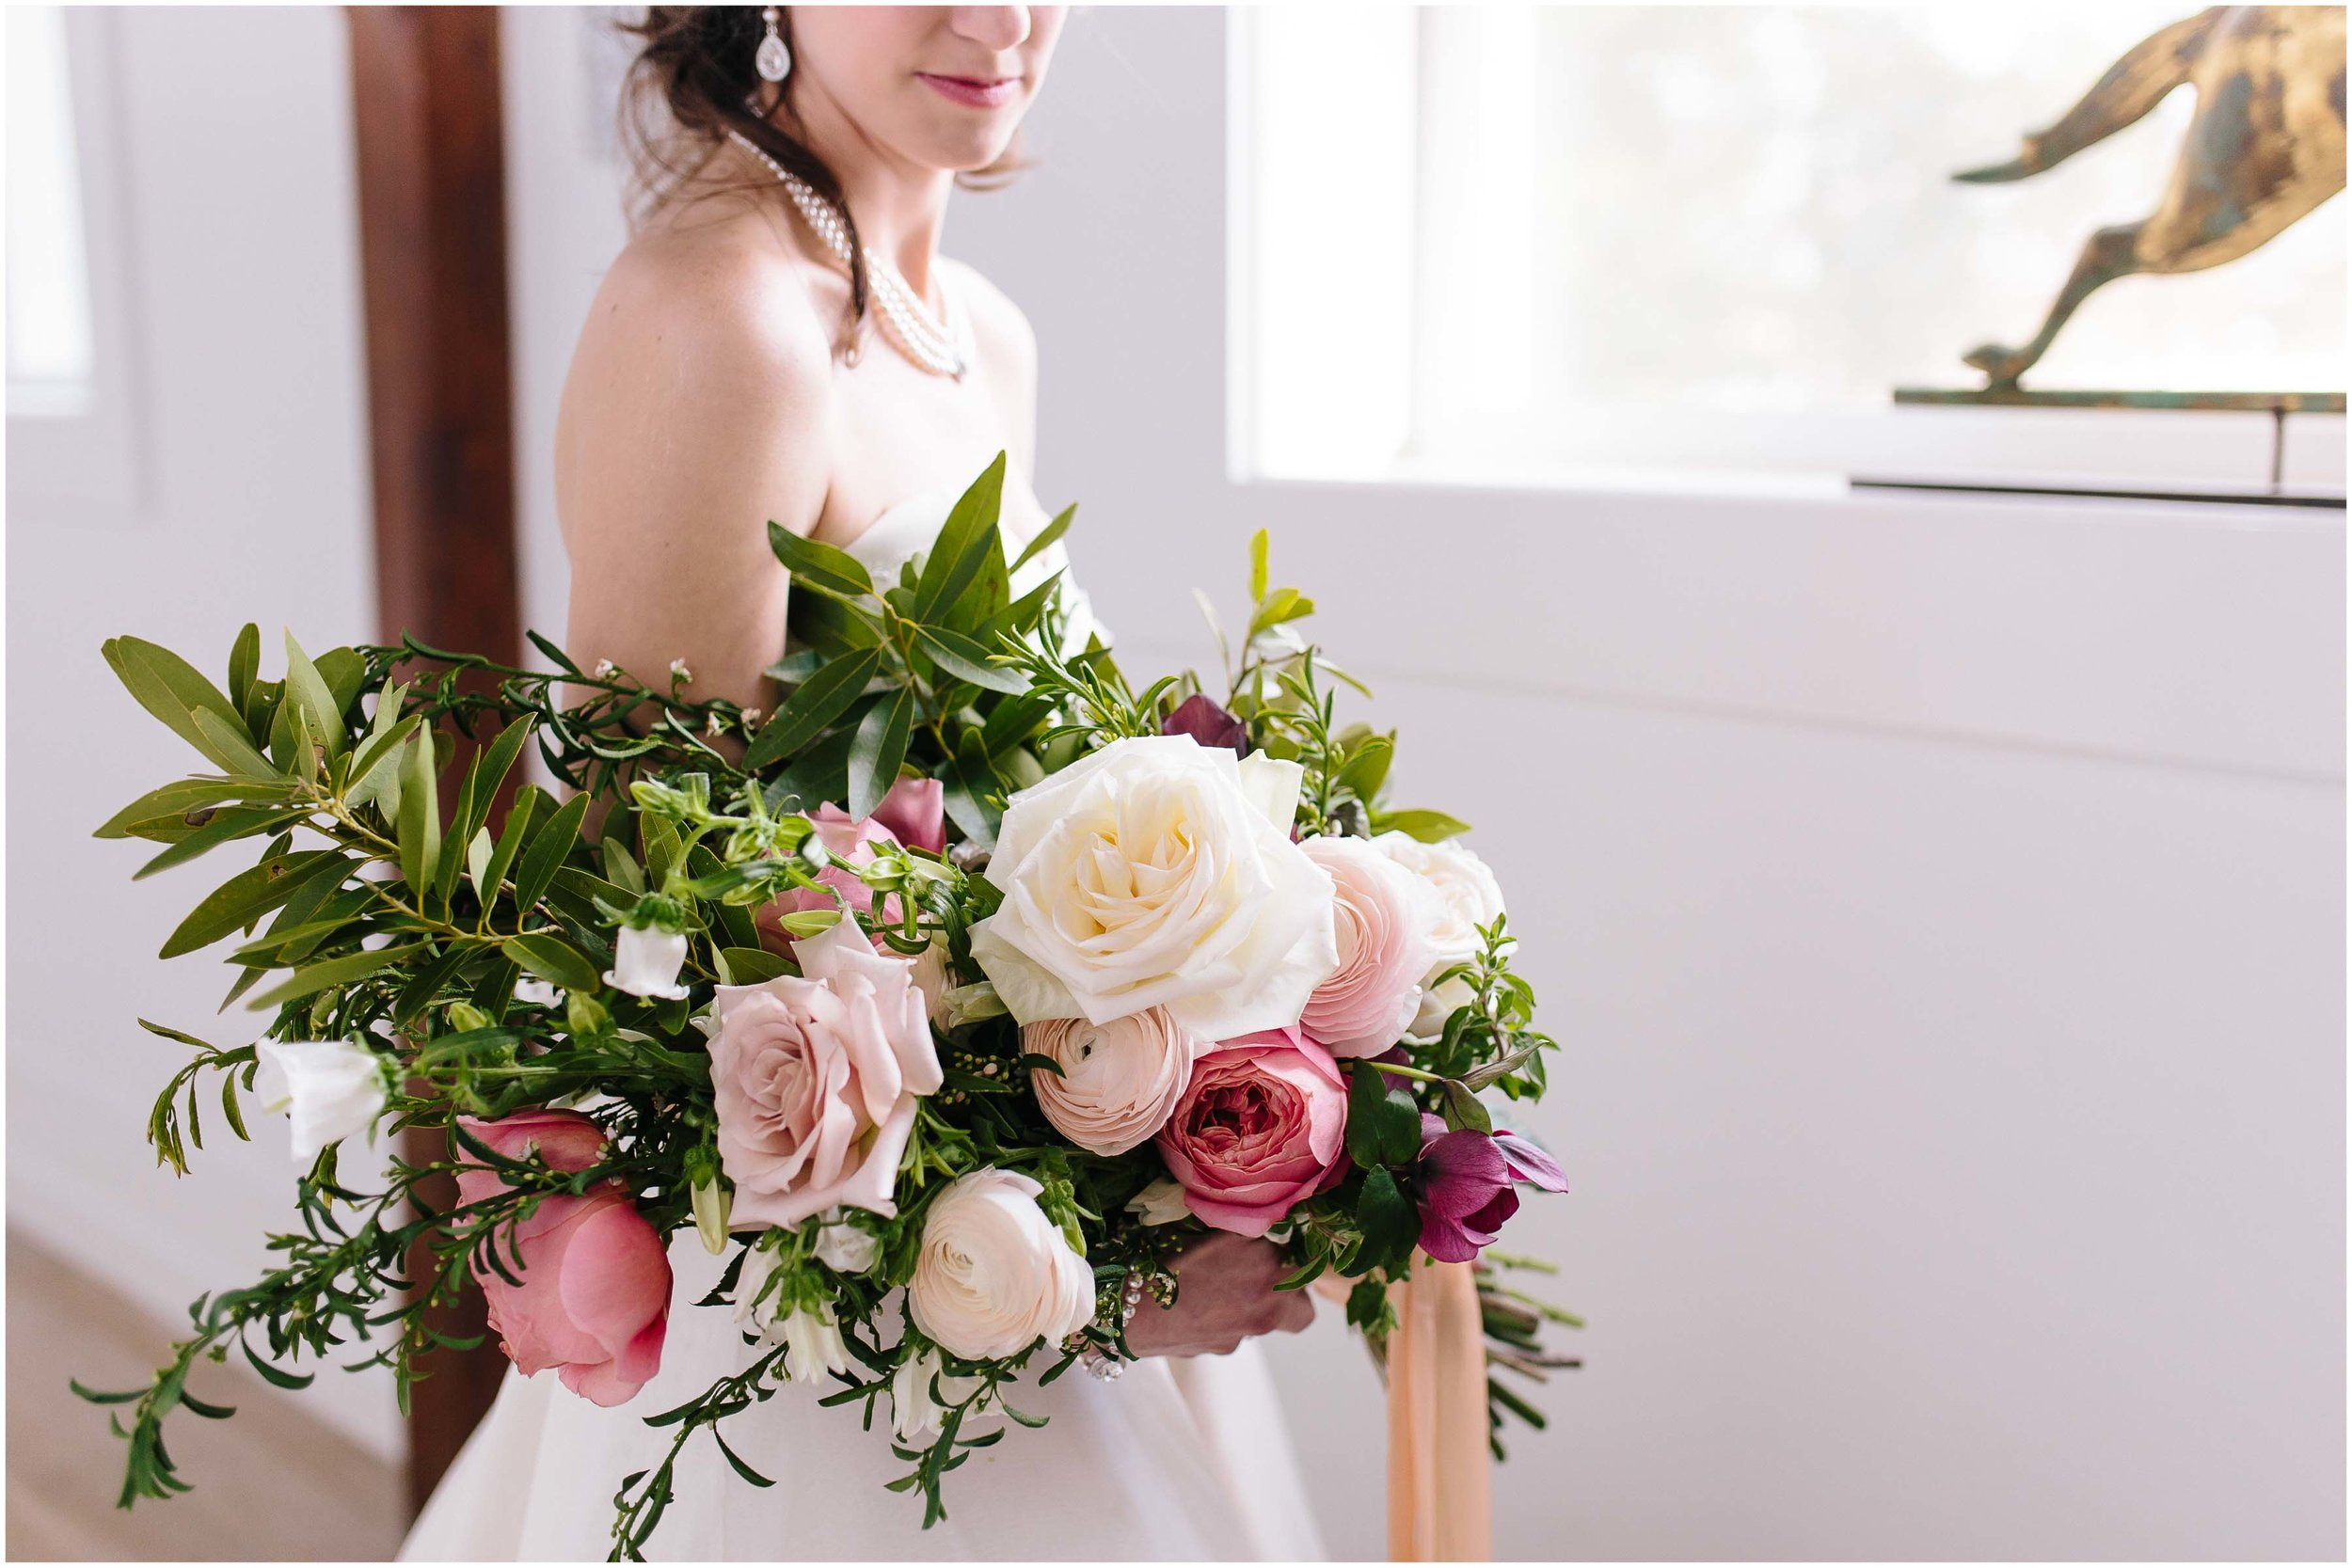 Intimate and romantic styled wedding photography in Lee, Massachusetts in the Berkshires - bride and bouquet